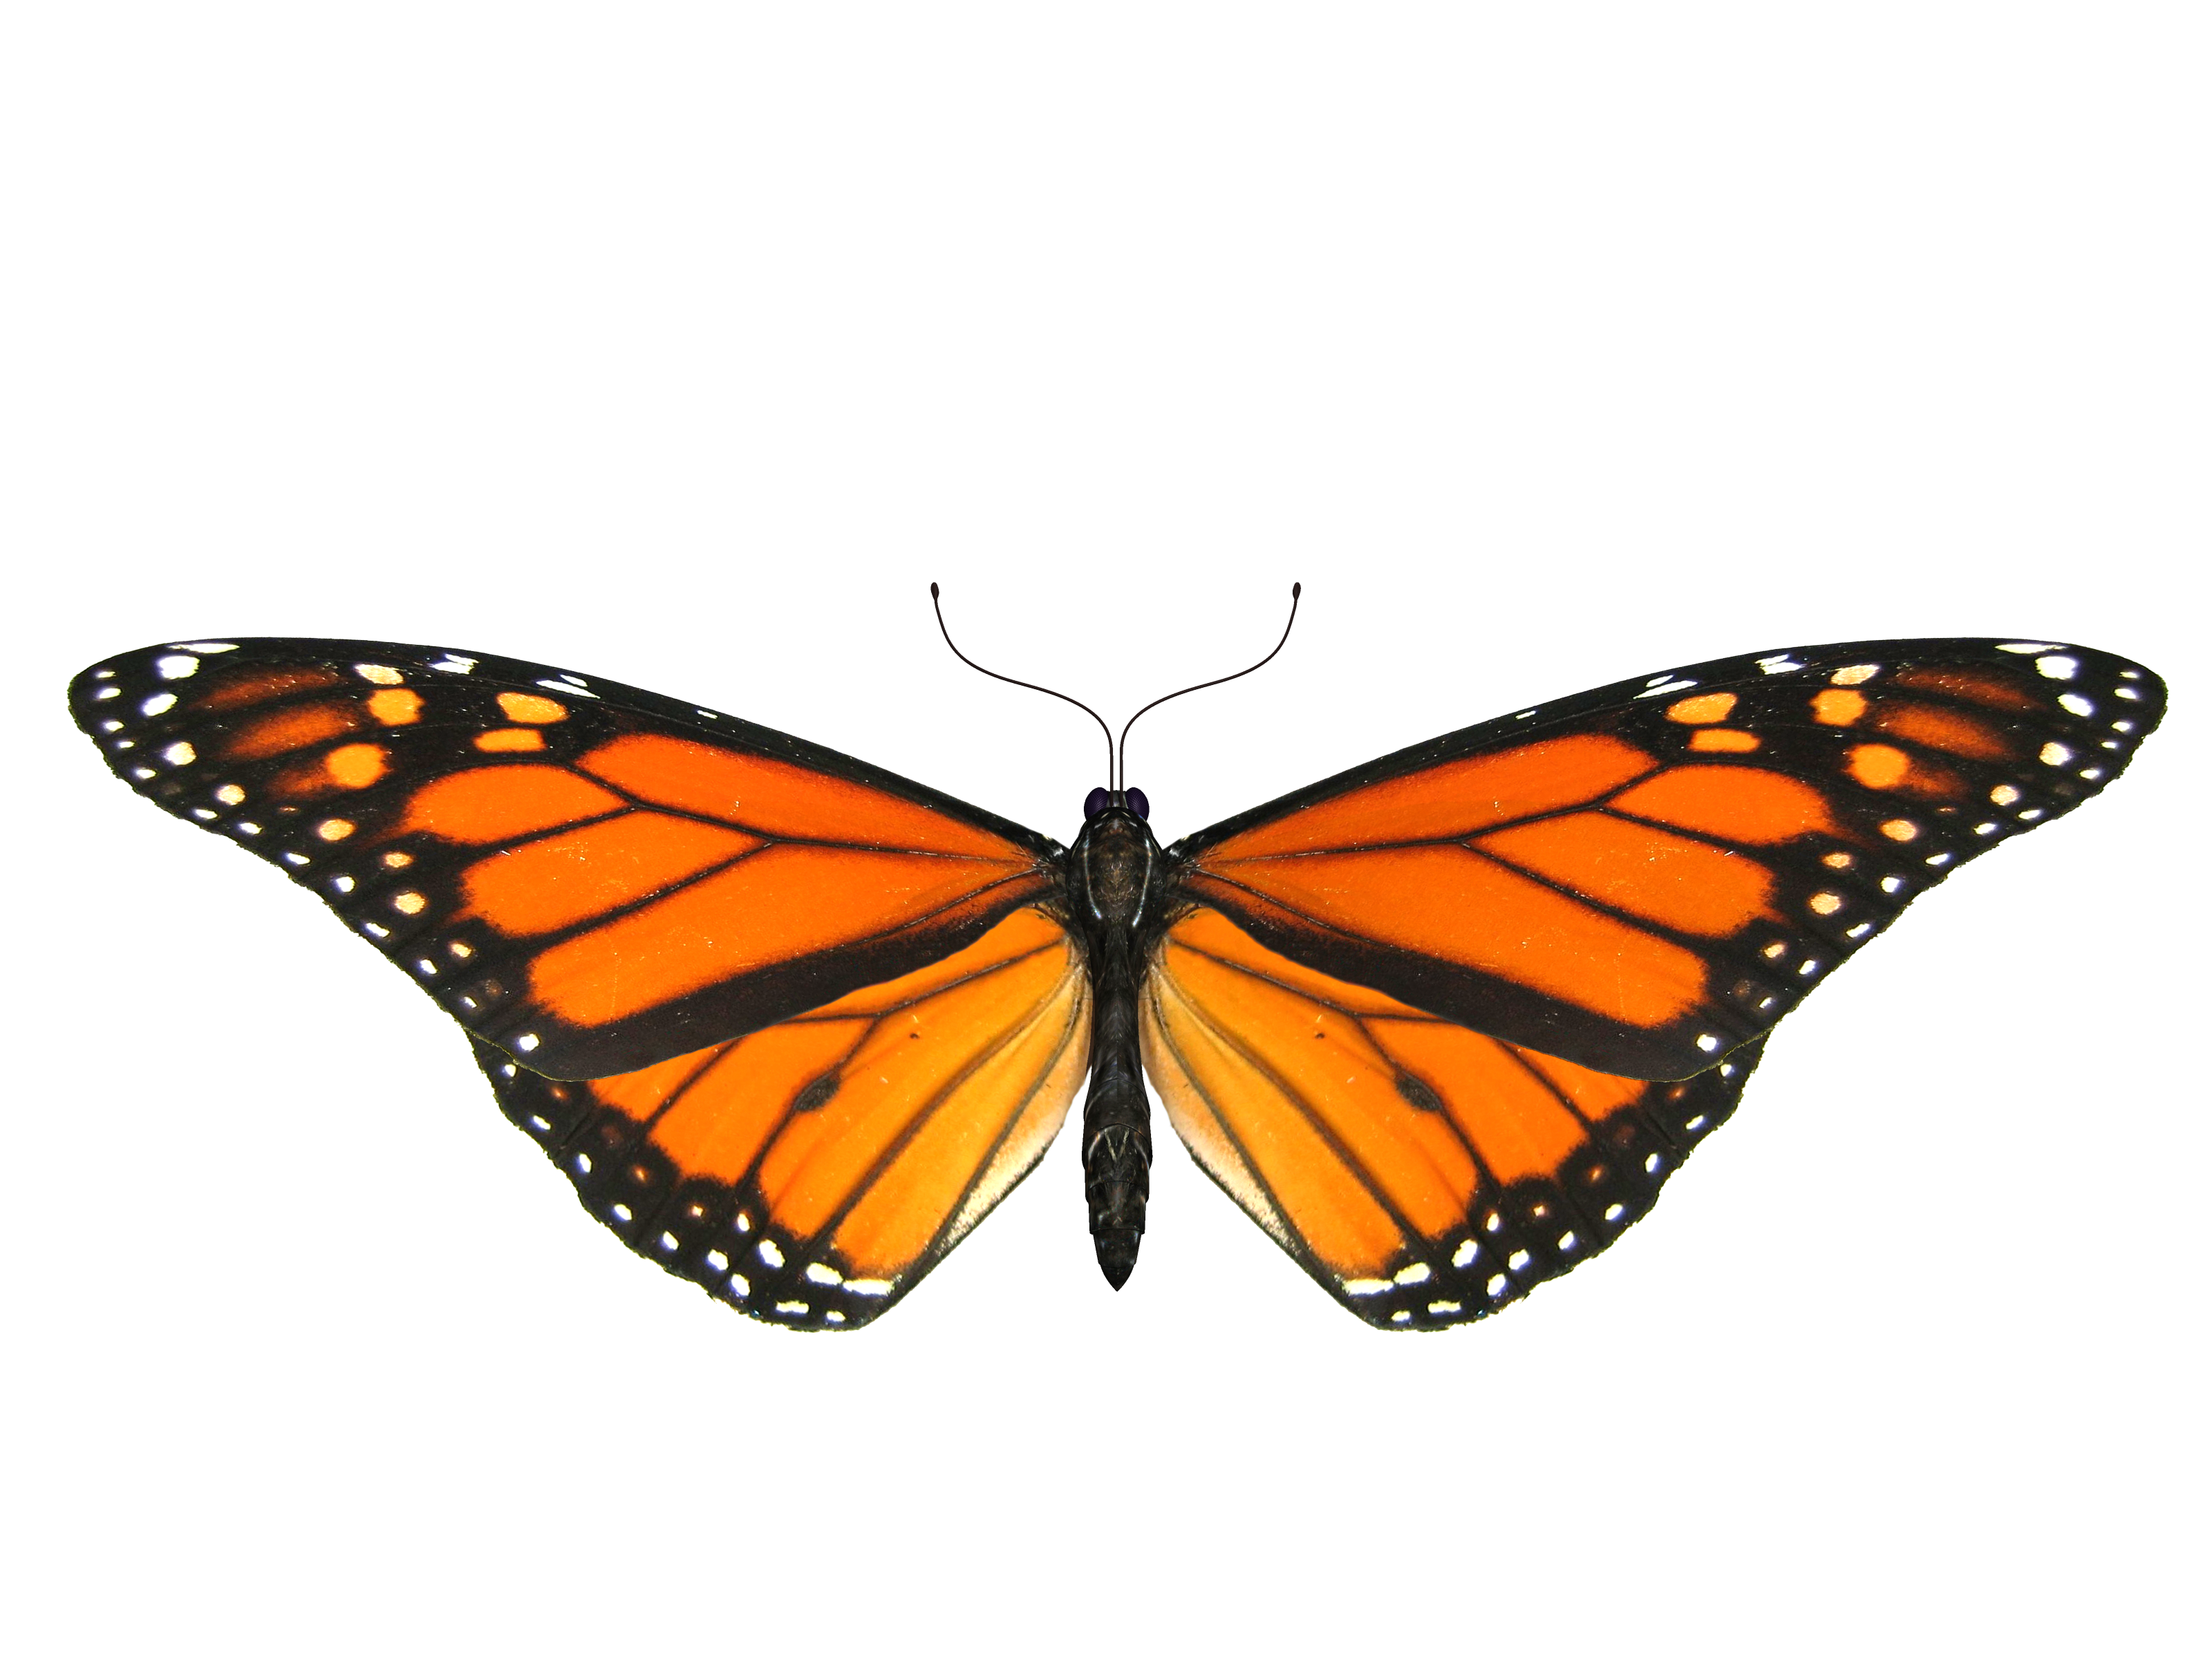 Frog clipart butterfly. Png image